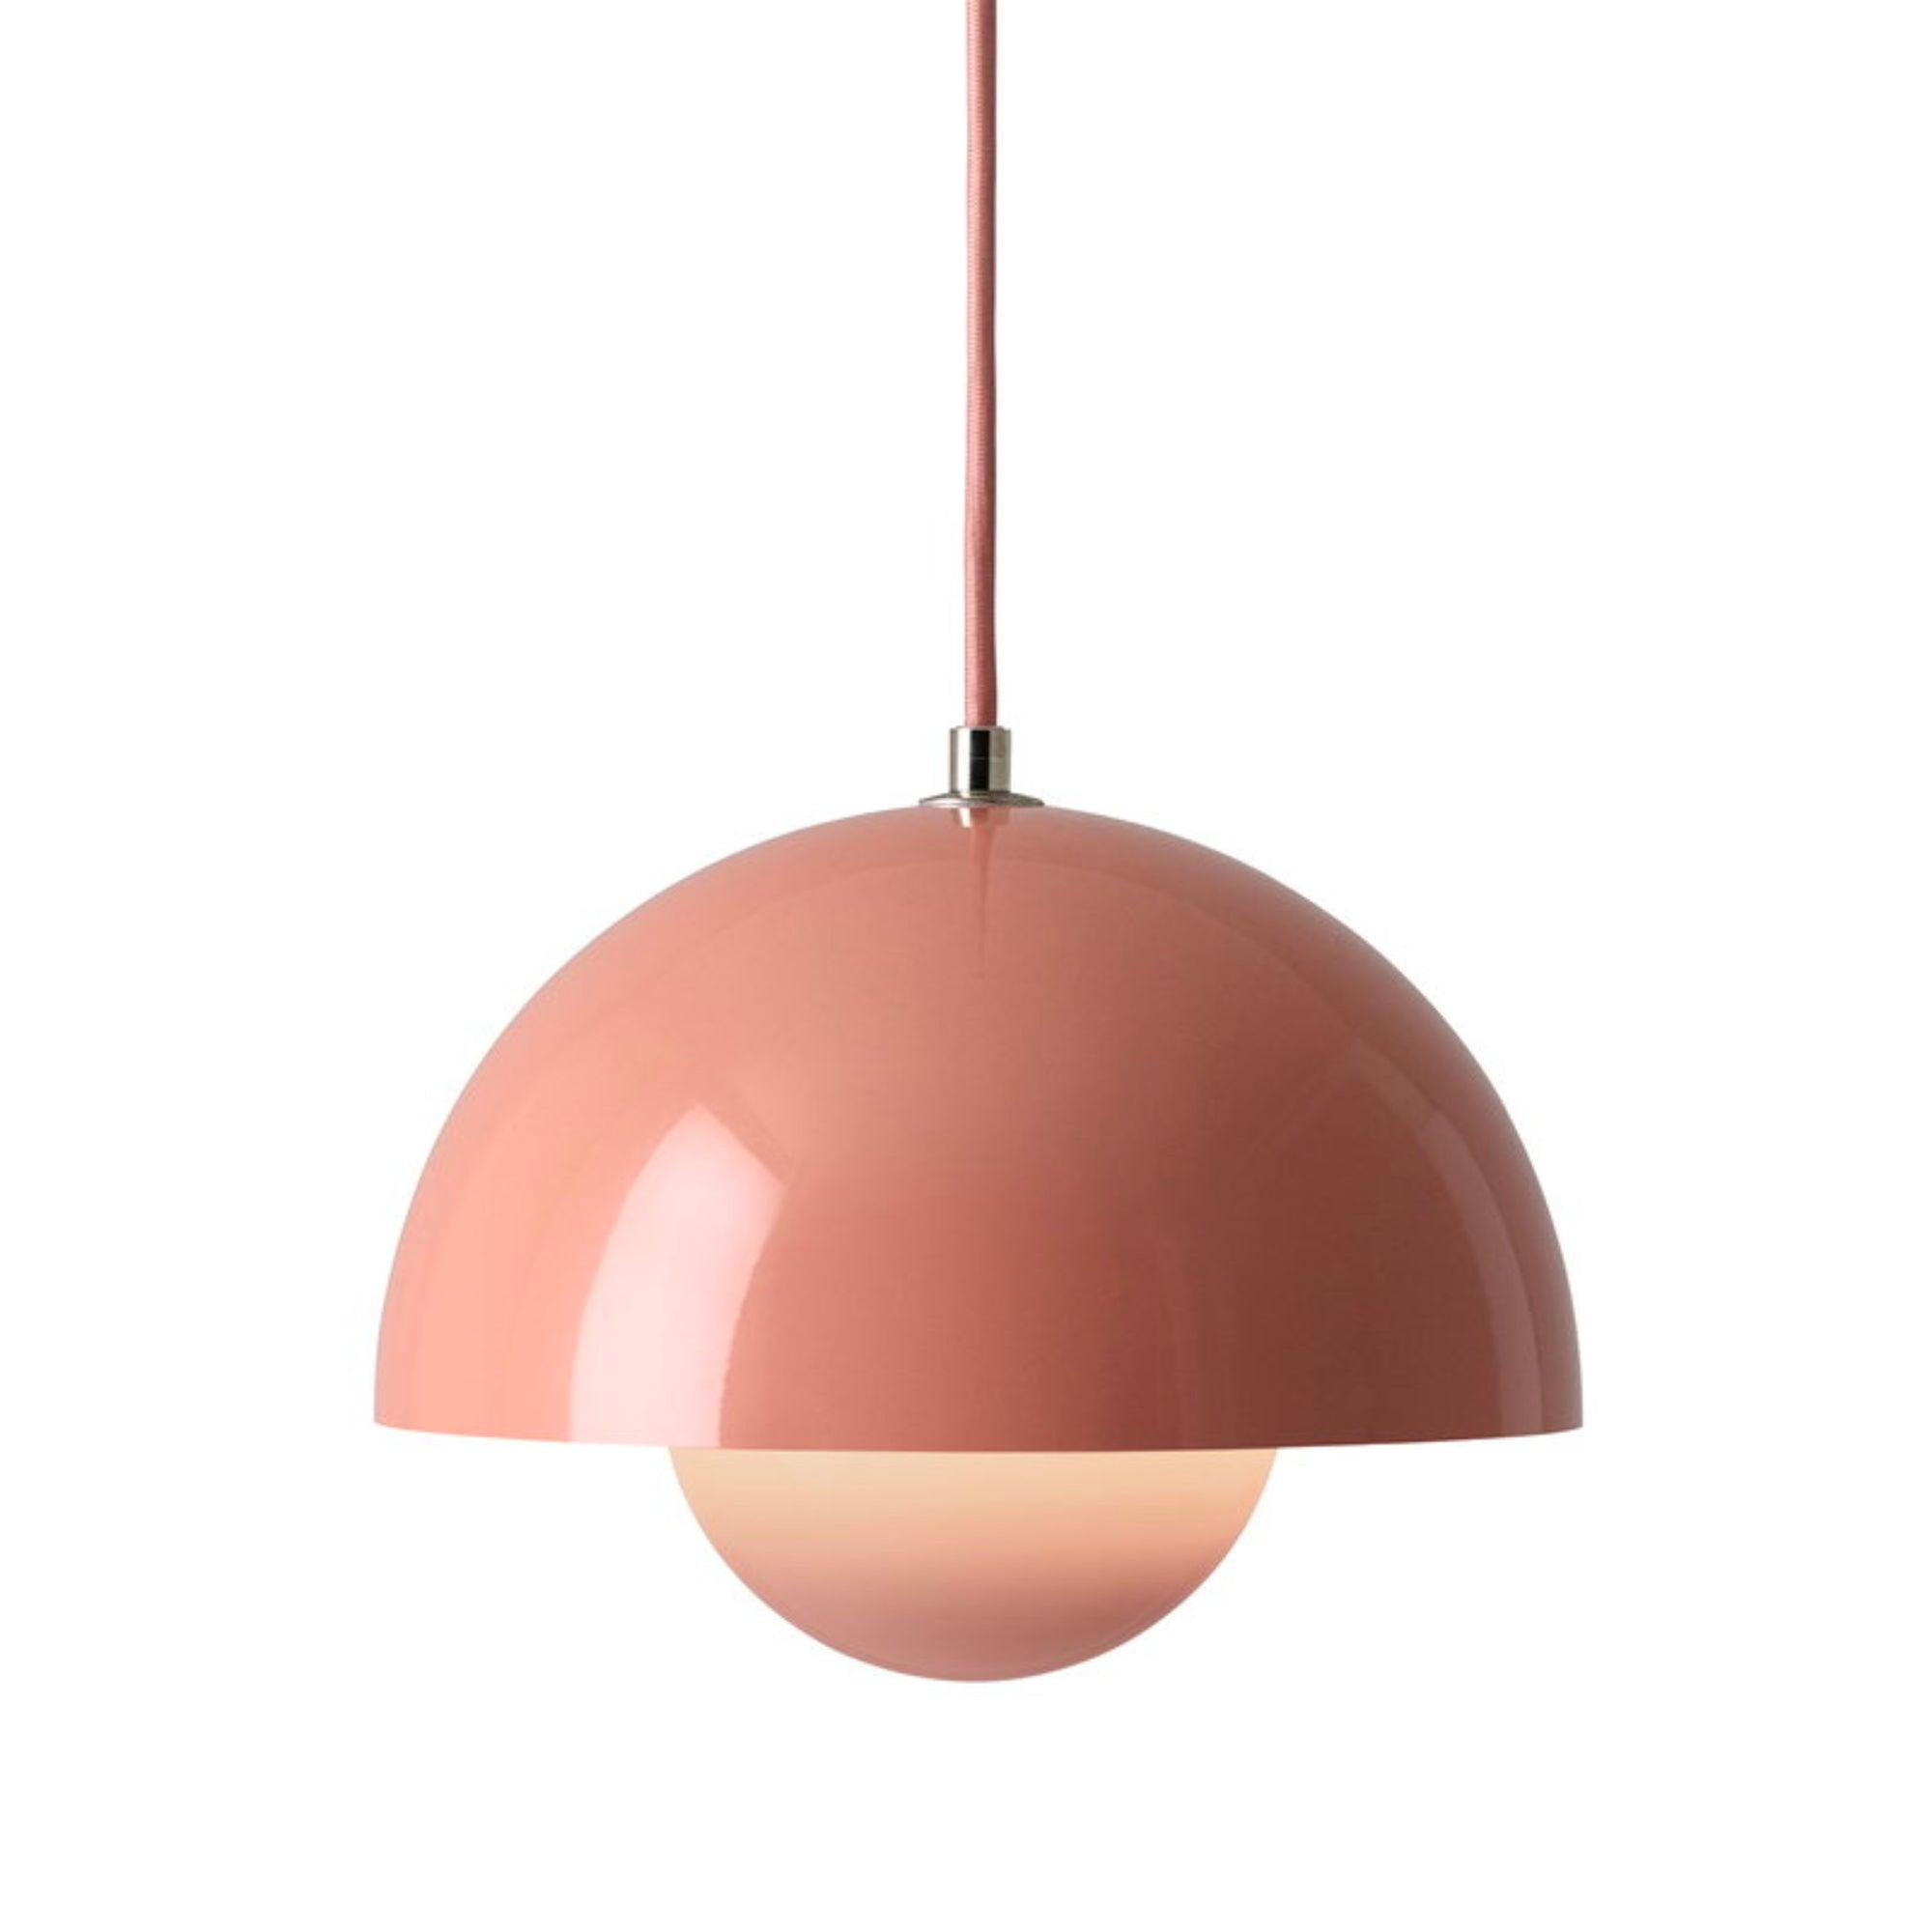 &Tradition Flowerpot pendant lamp, beige red